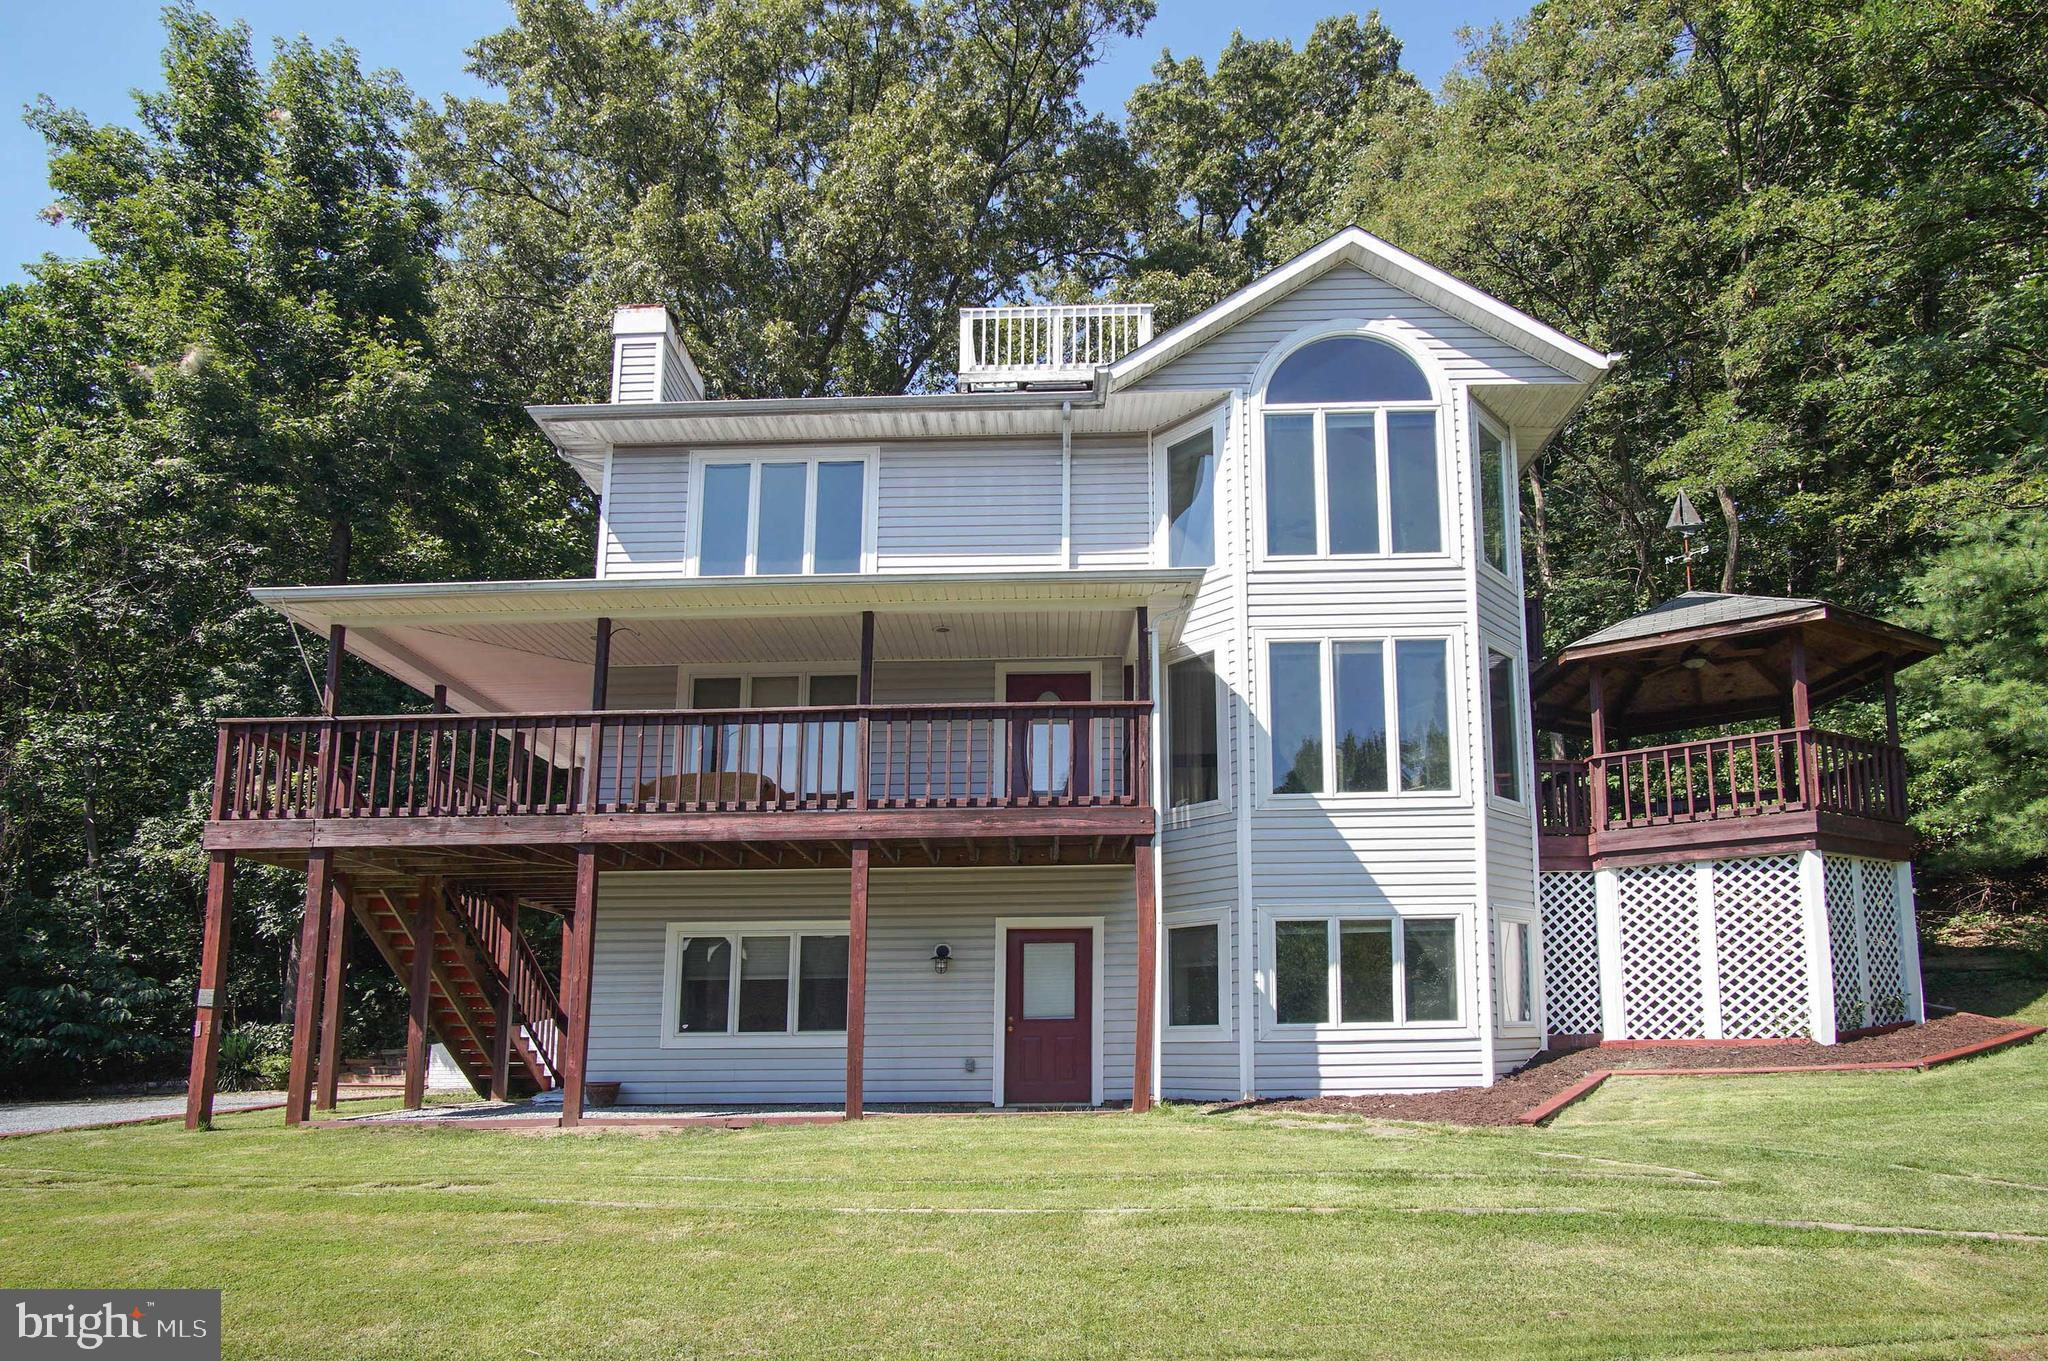 920 CHART COURT, LUSBY, MD 20657